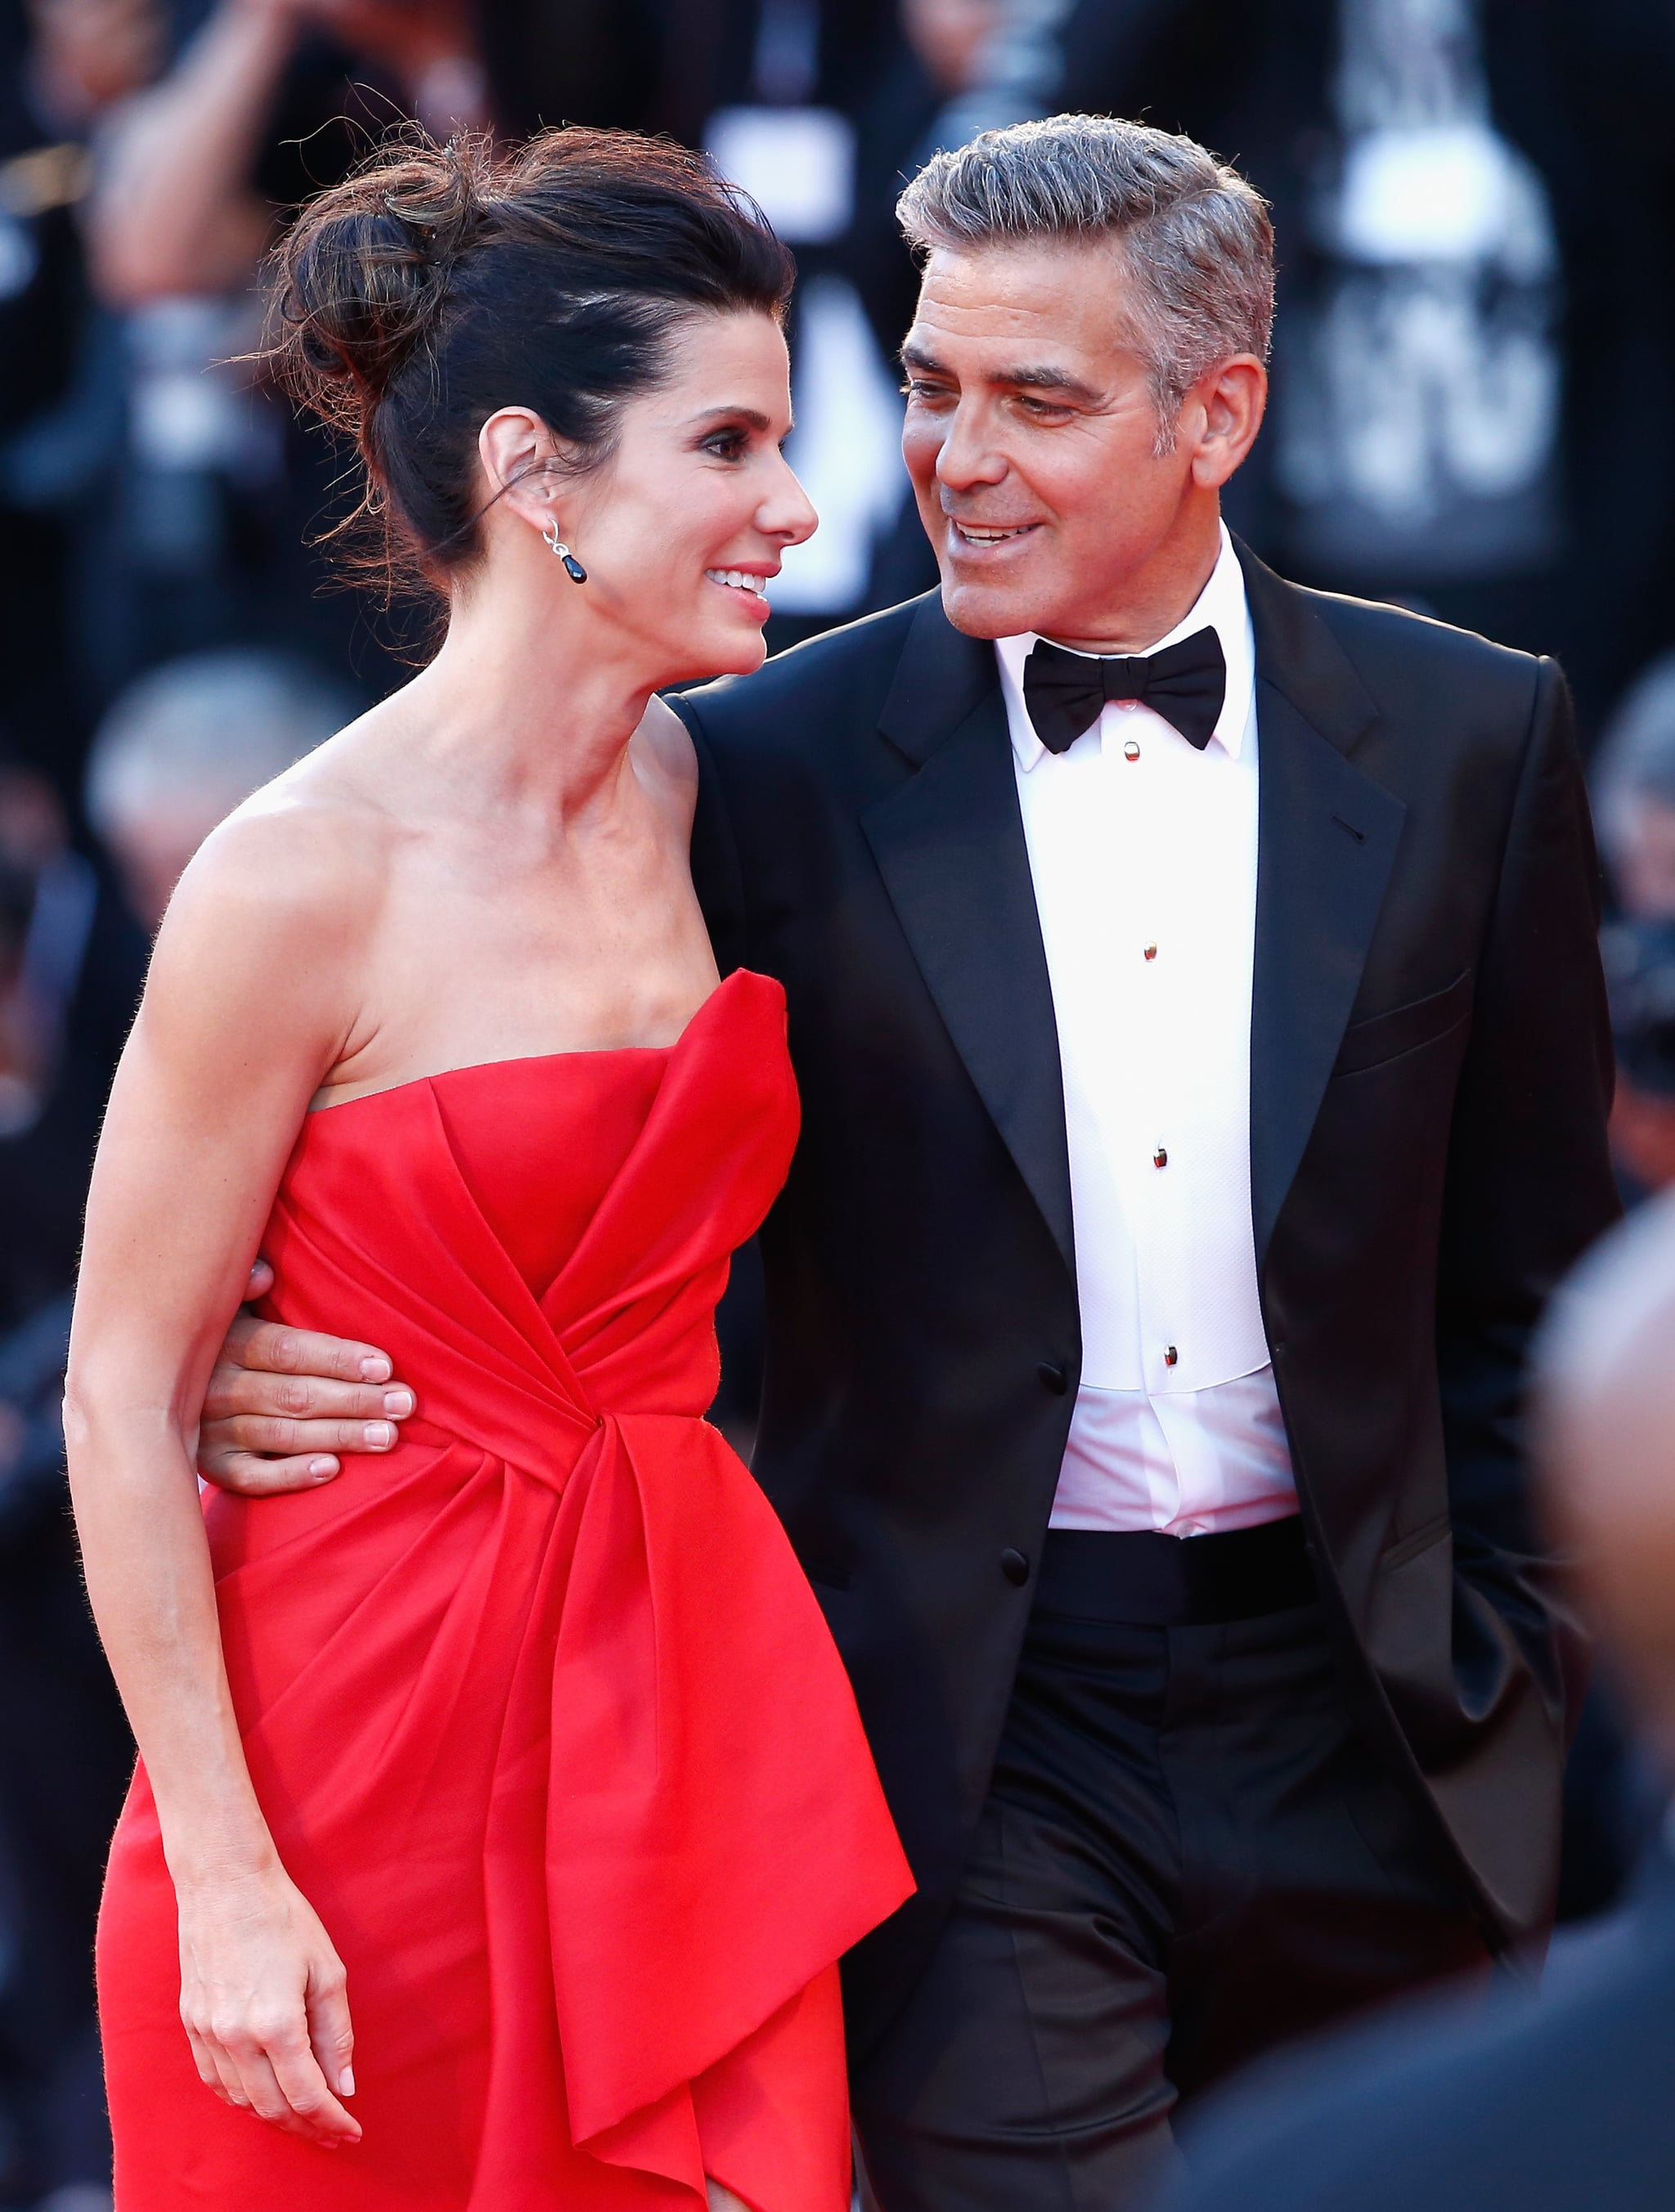 George Clooney and Sandra Bullock made a glamorous pair for the red carpet premiere of Gravity.